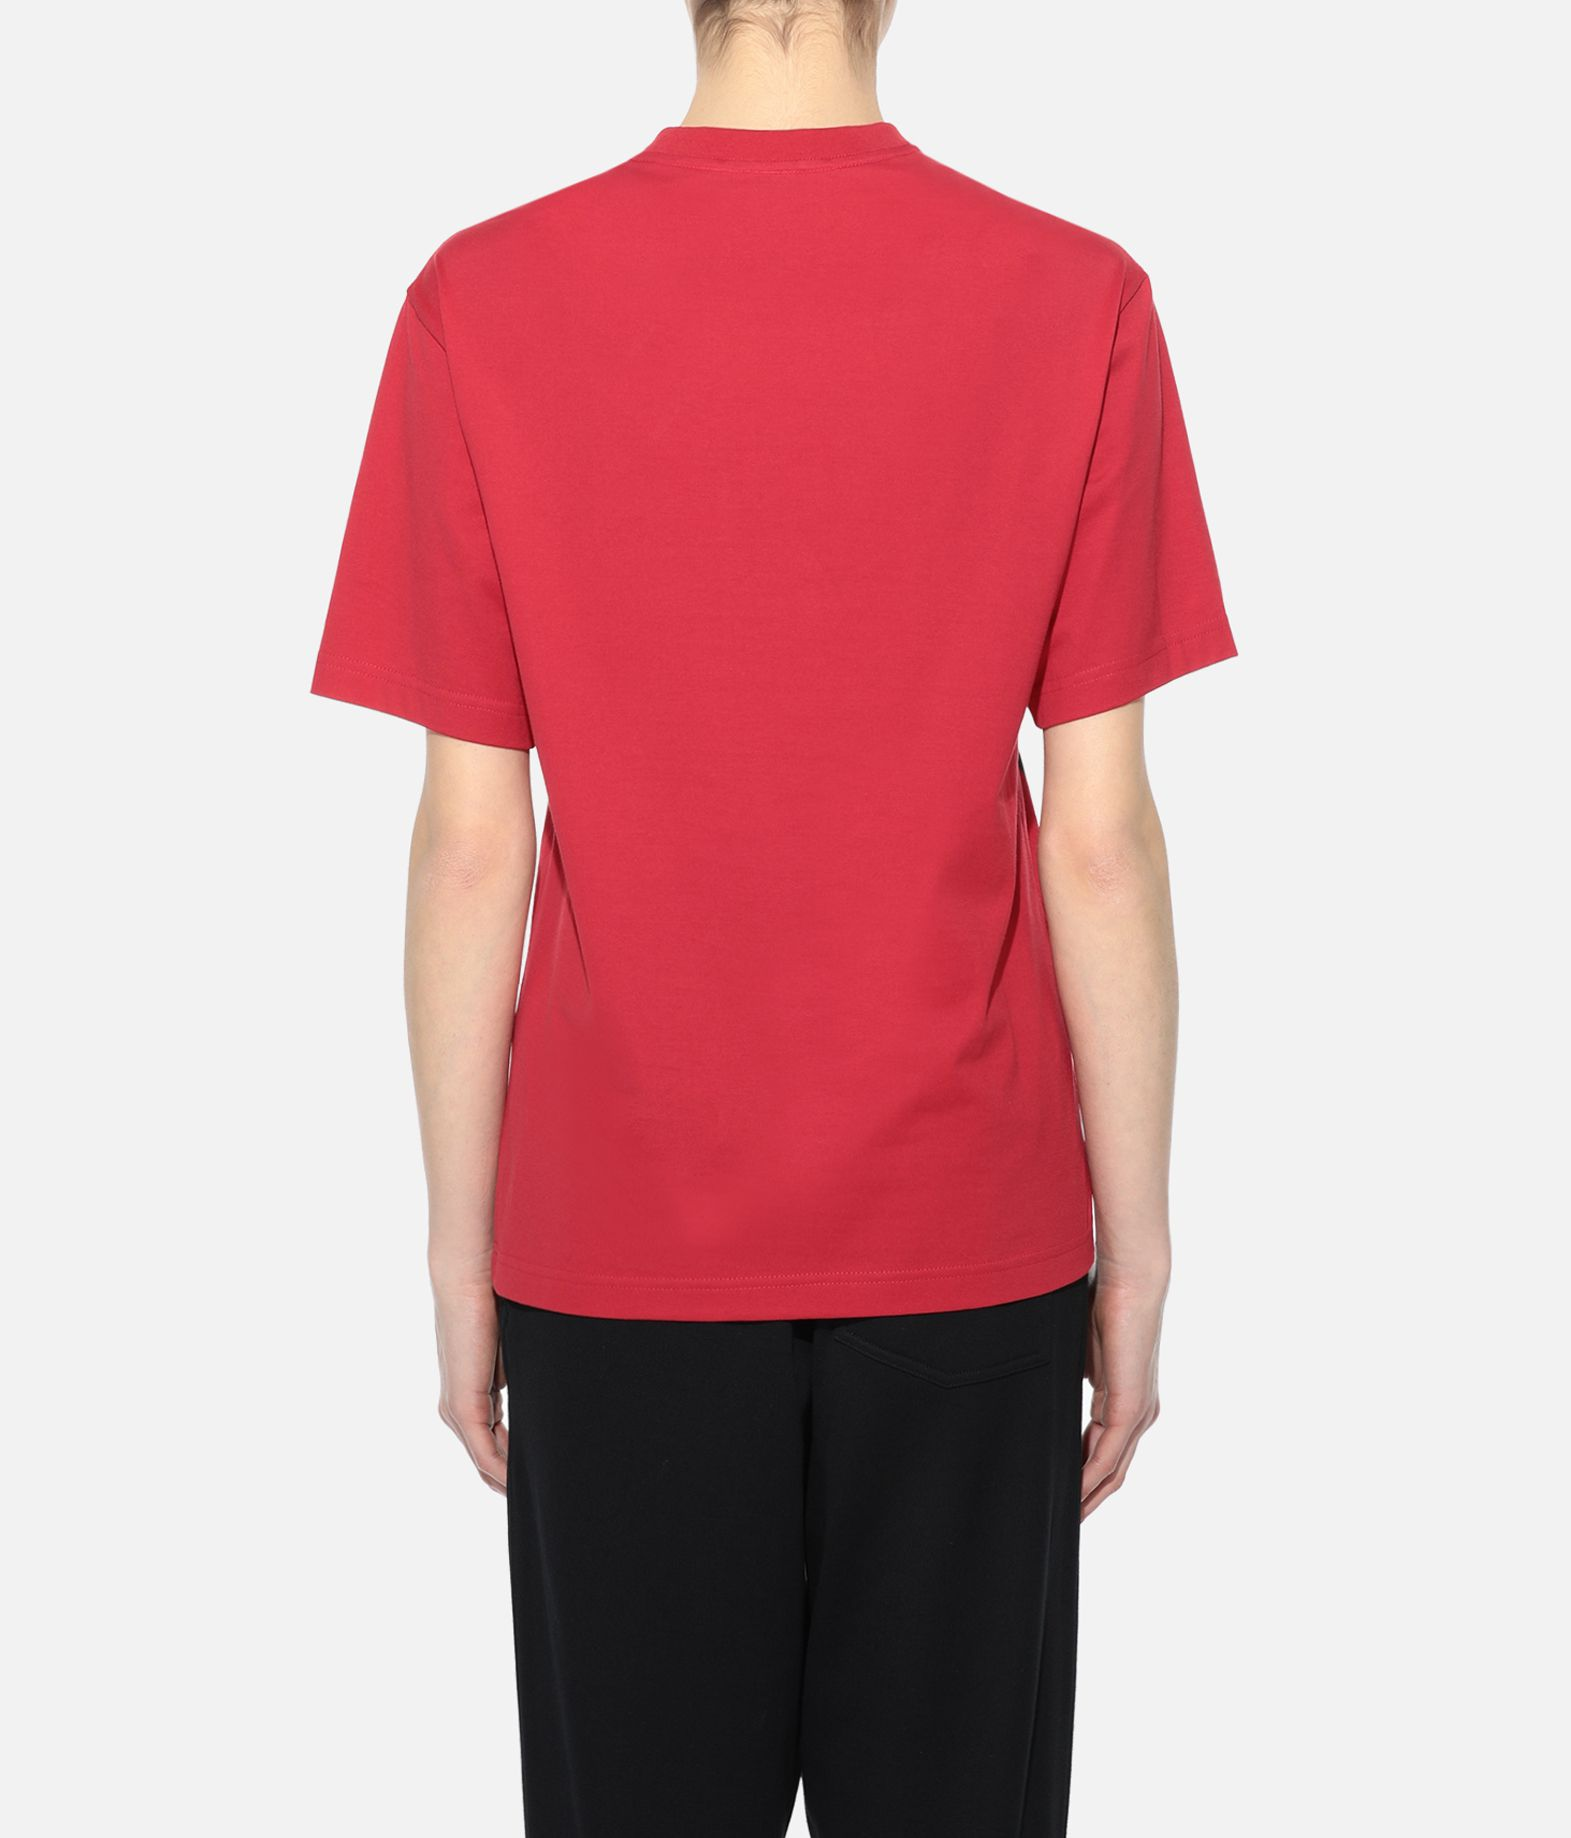 Y-3 Y-3 GRAPHIC TEE Short sleeve t-shirt Woman d